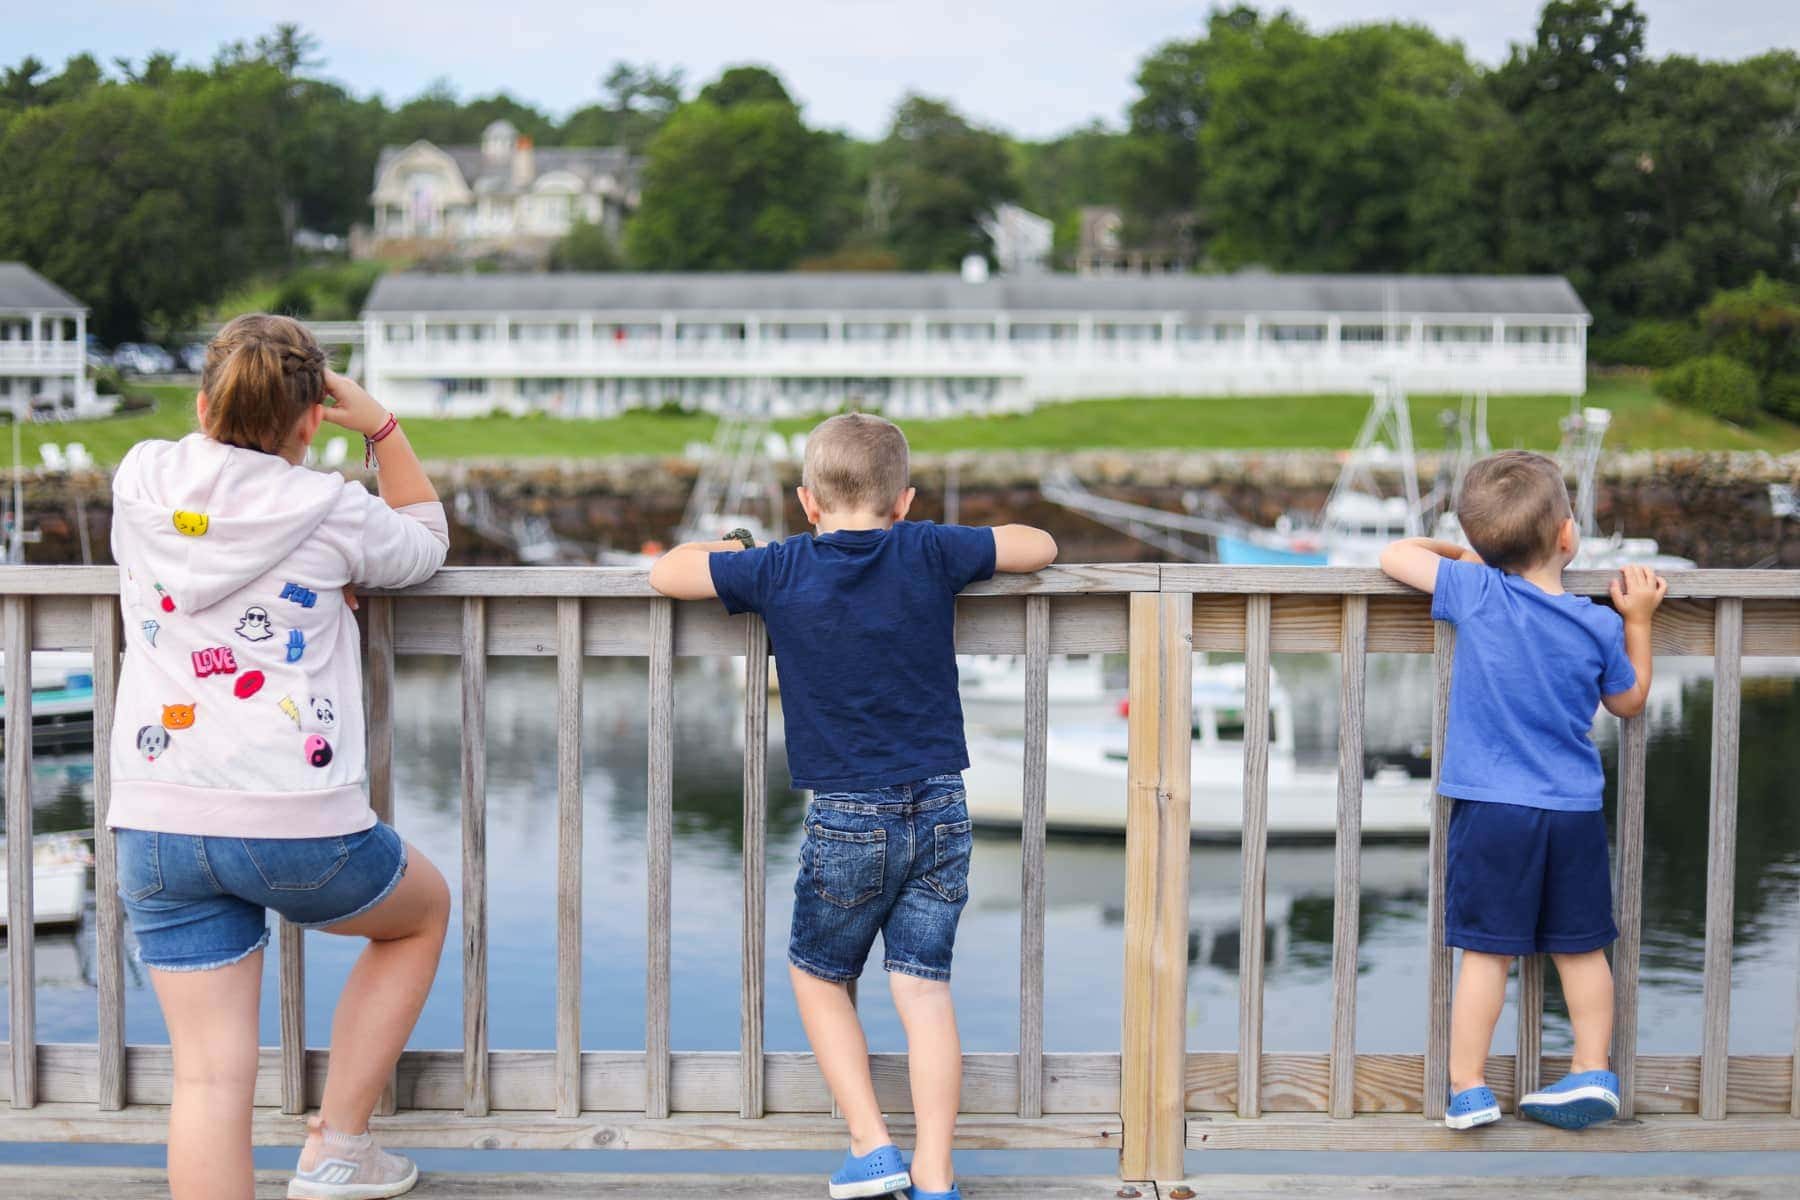 The kids looking at the water from a dock